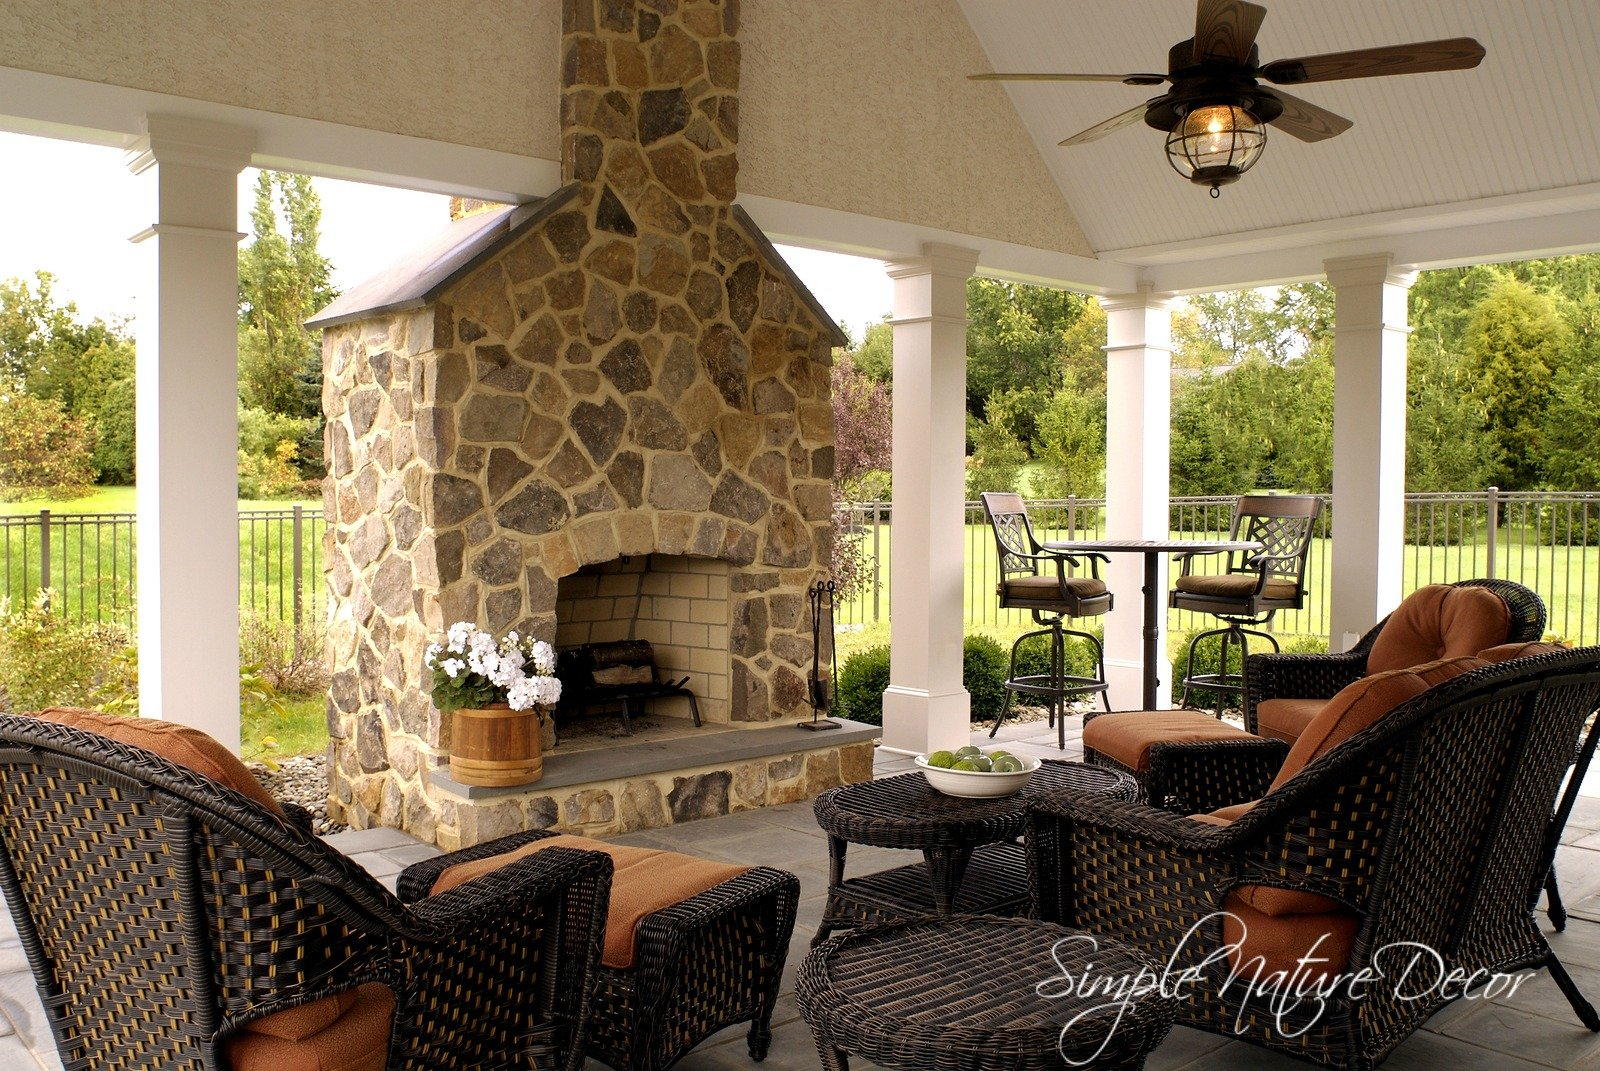 Simple nature decor - Covered outdoor living spaces ...